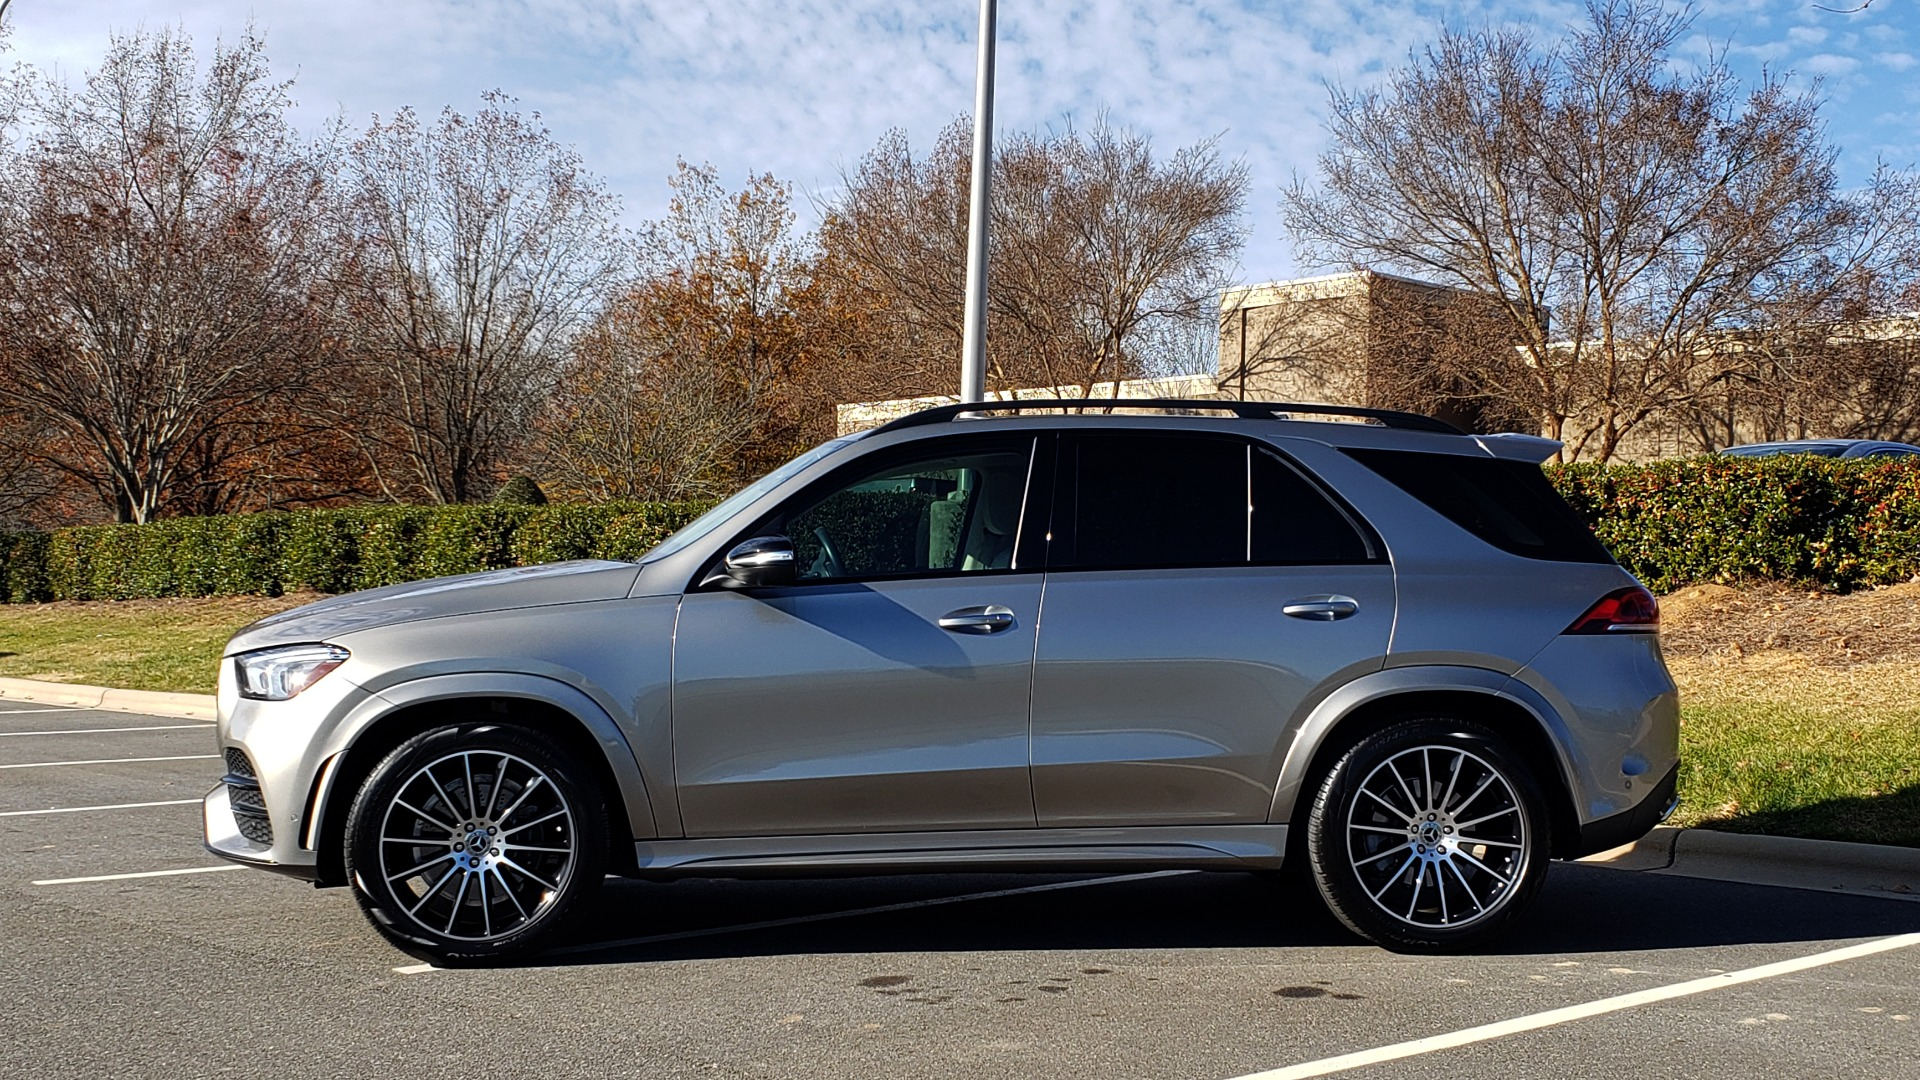 Used 2020 Mercedes-Benz GLE 350 PREMIUM / NAV / PARK ASST / NIGHT PKG / AMG LINE EXT / REARVIEW for sale Sold at Formula Imports in Charlotte NC 28227 110